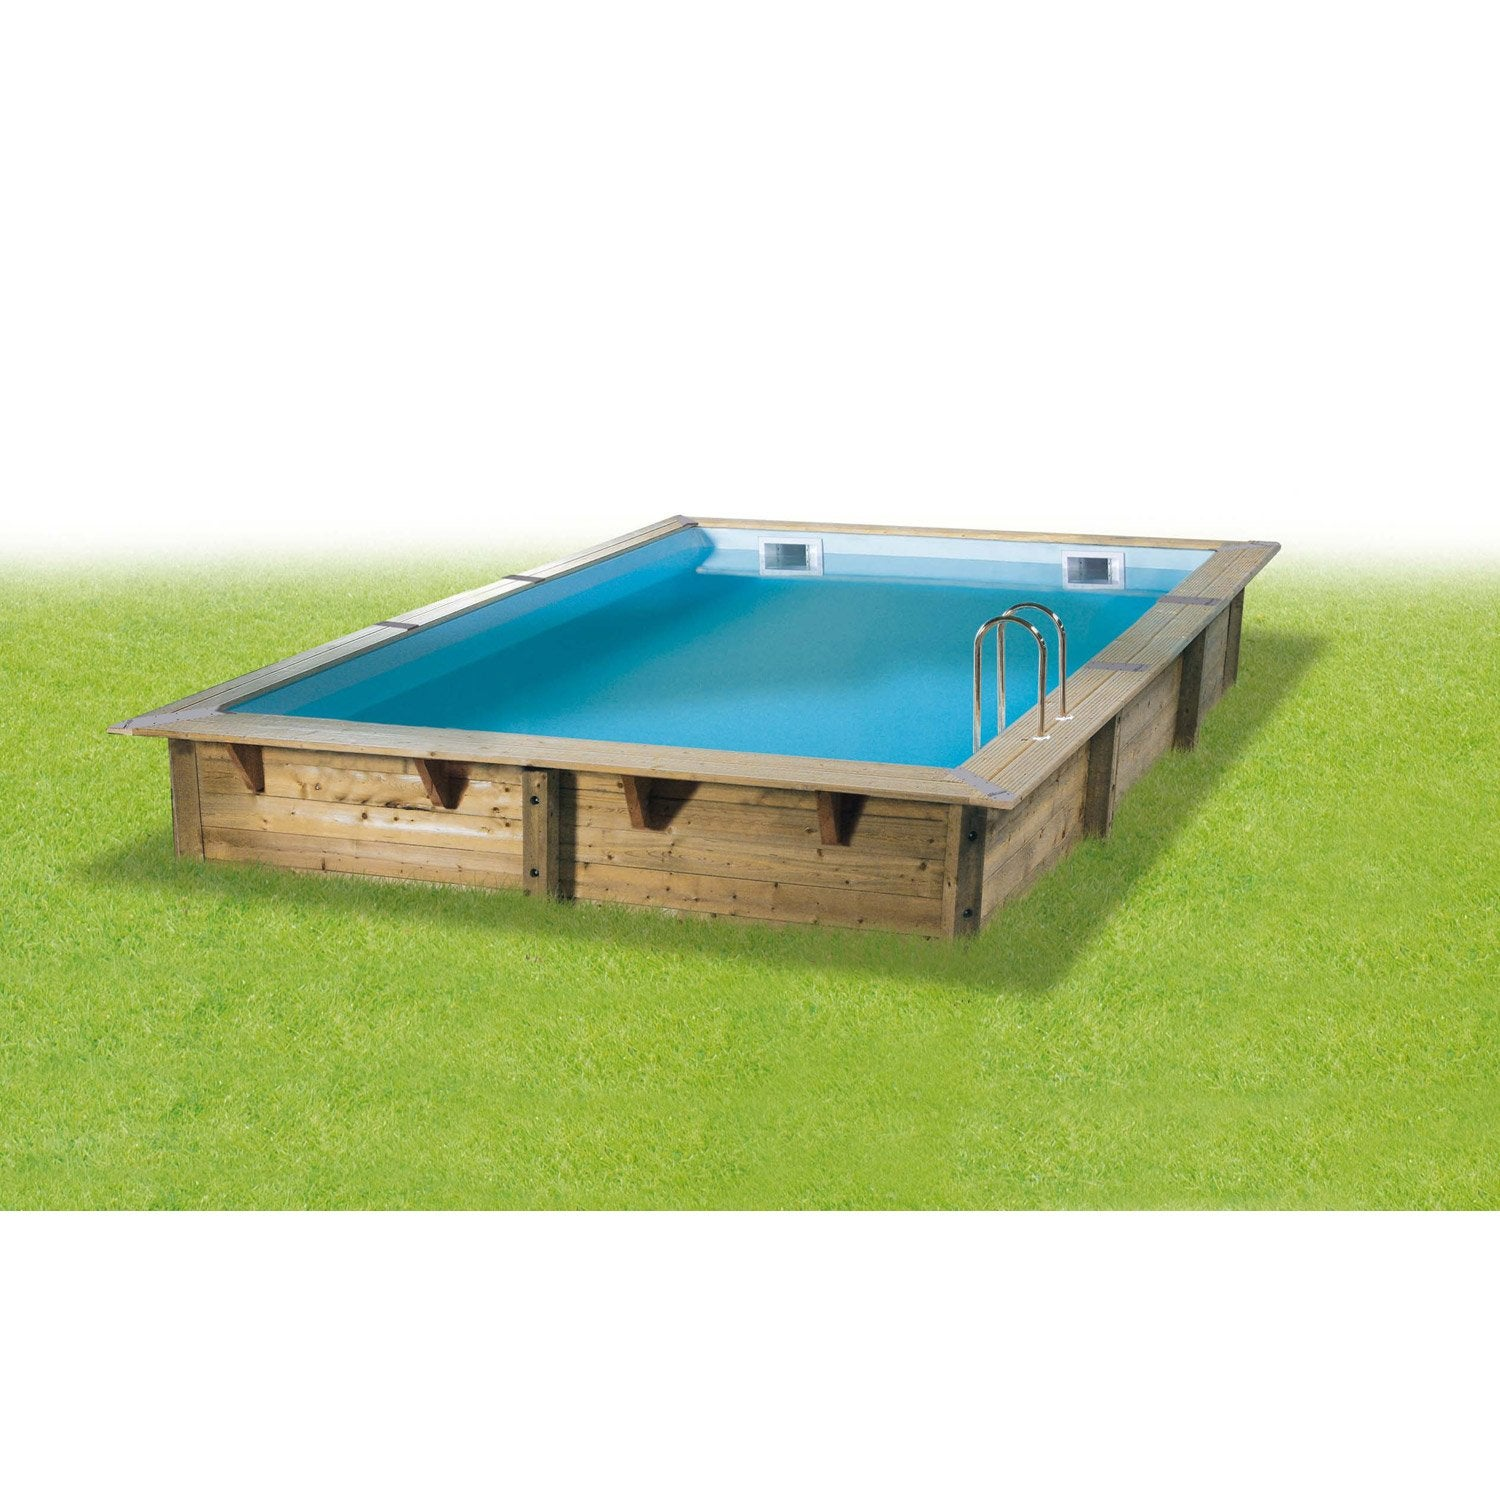 Destockage piscine bois for Piscine bois destockage